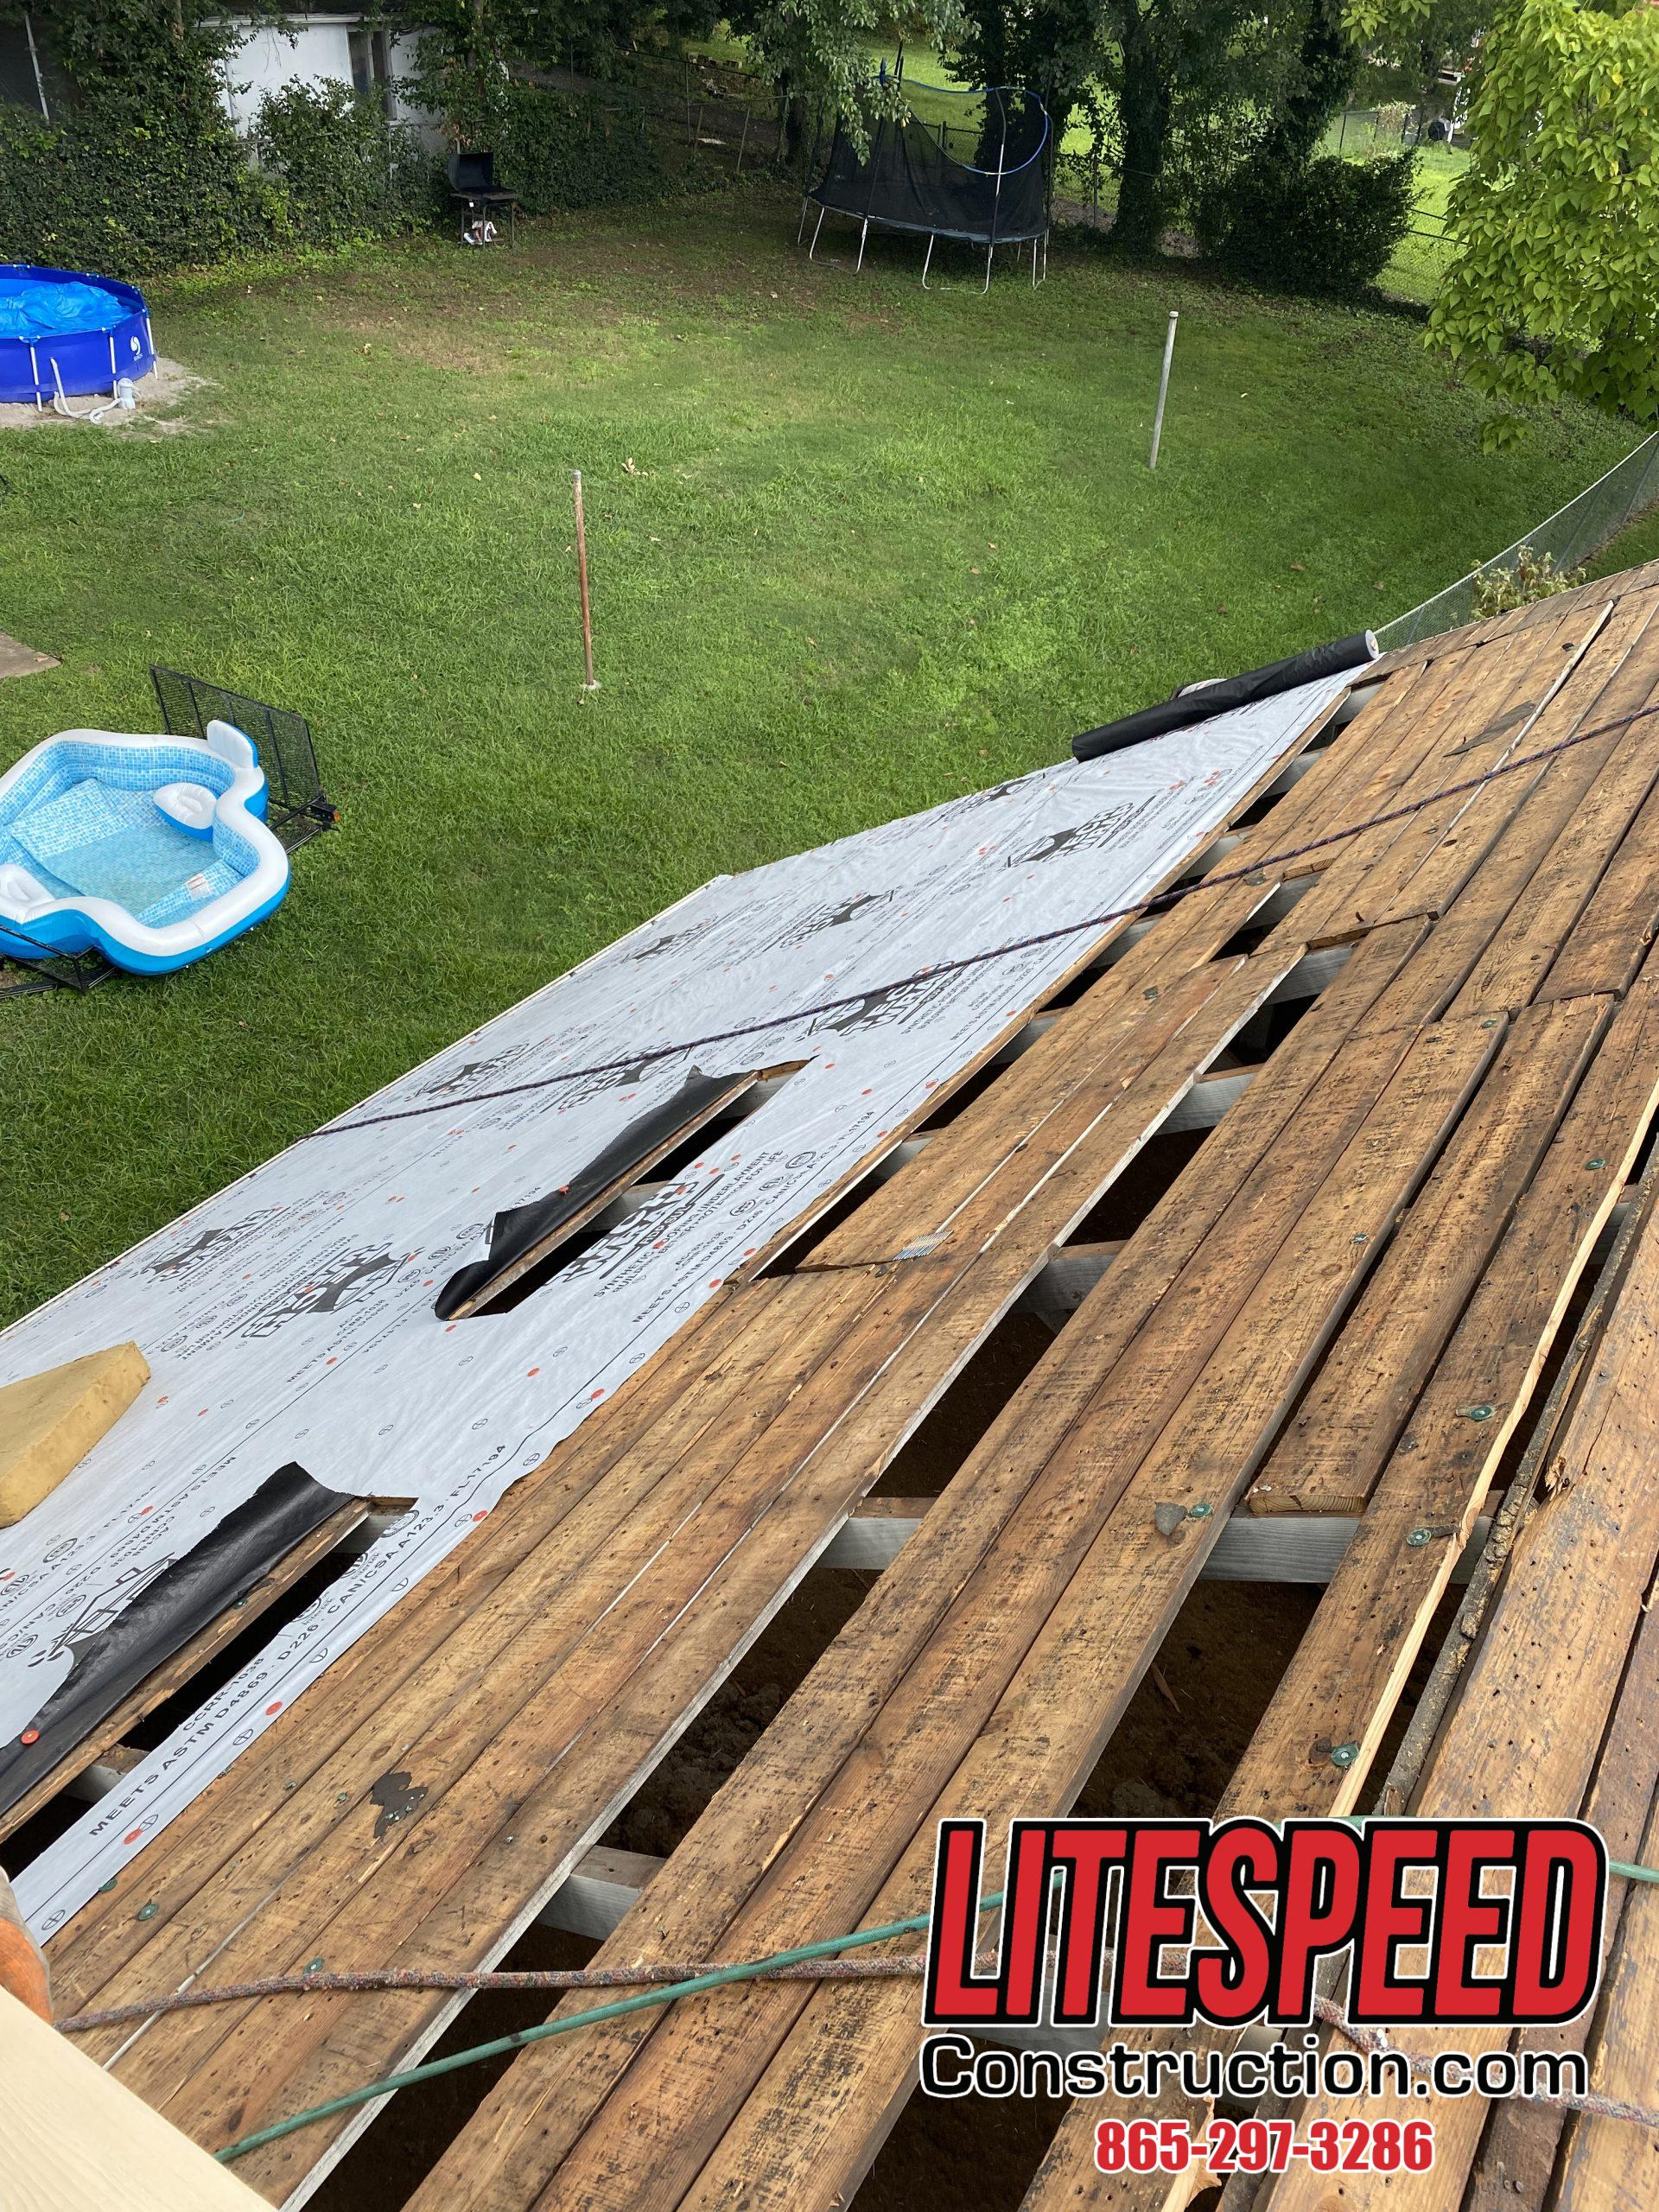 This is a picture of a roof that is getting synthetic underlayment